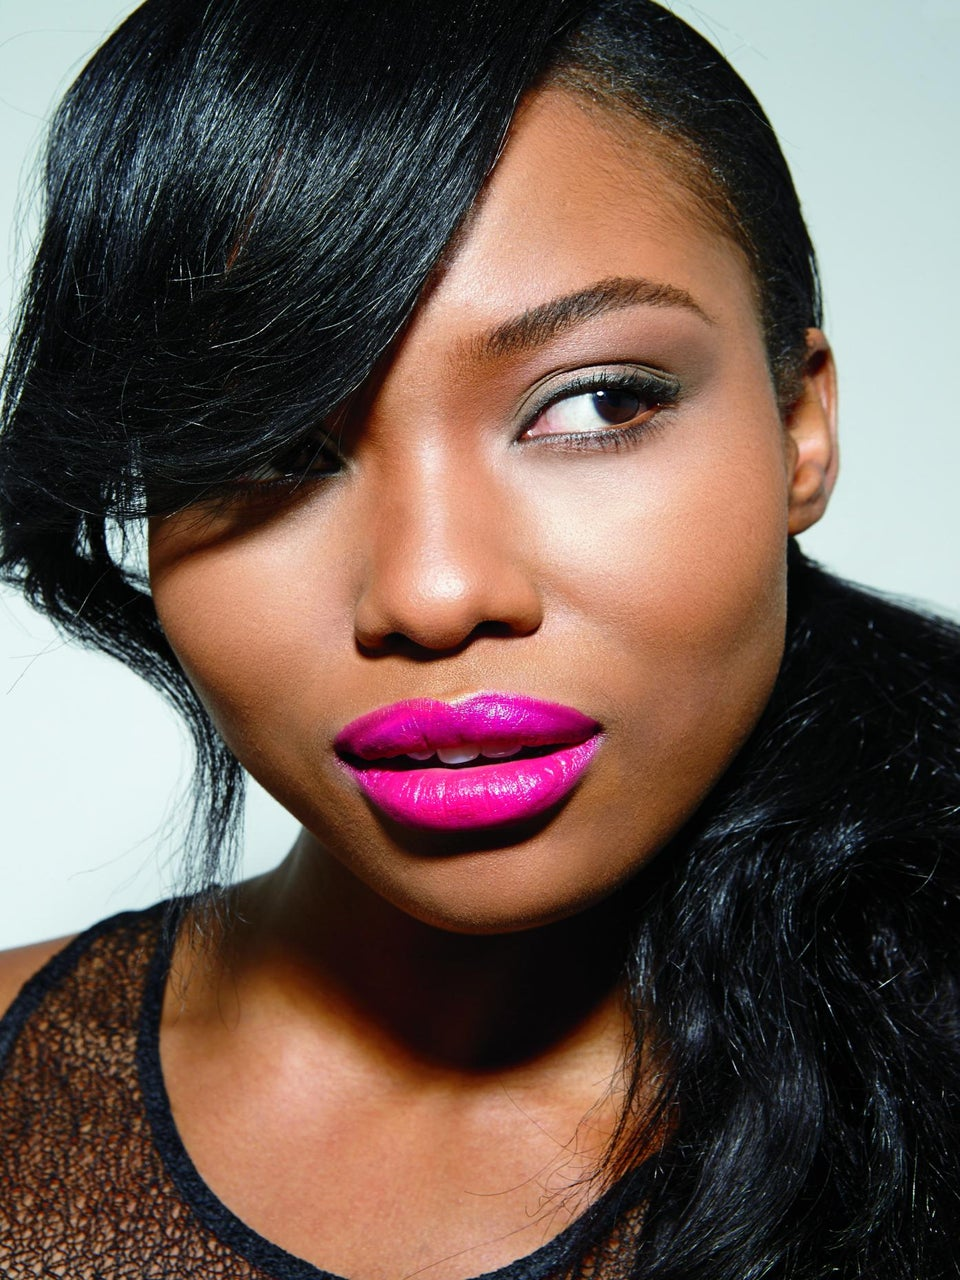 Stir It Up: How To Get A Vibrant Pink Makeup Look